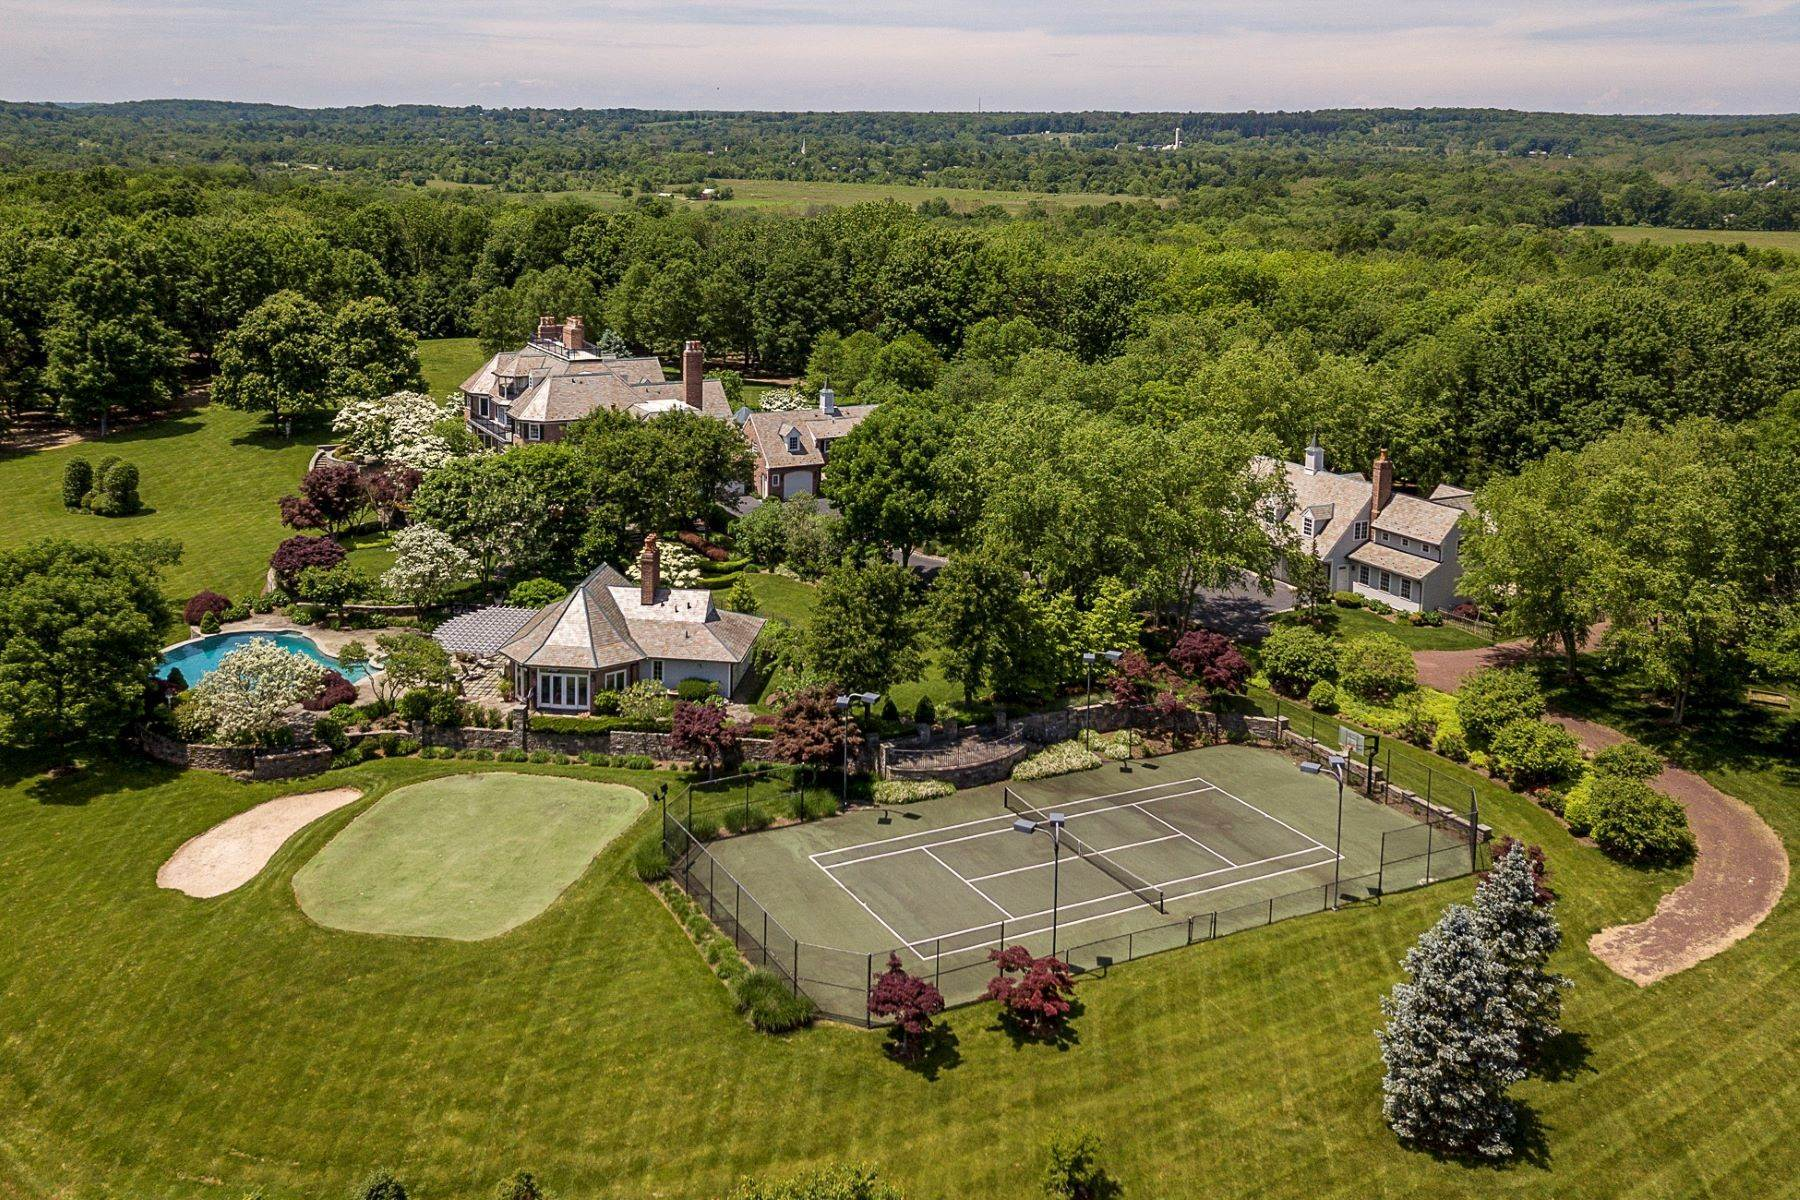 4. Single Family Homes for Sale at Private Compound with Every Amenity Imaginable 82 Aunt Molly Road, Hopewell, New Jersey 08525 United States